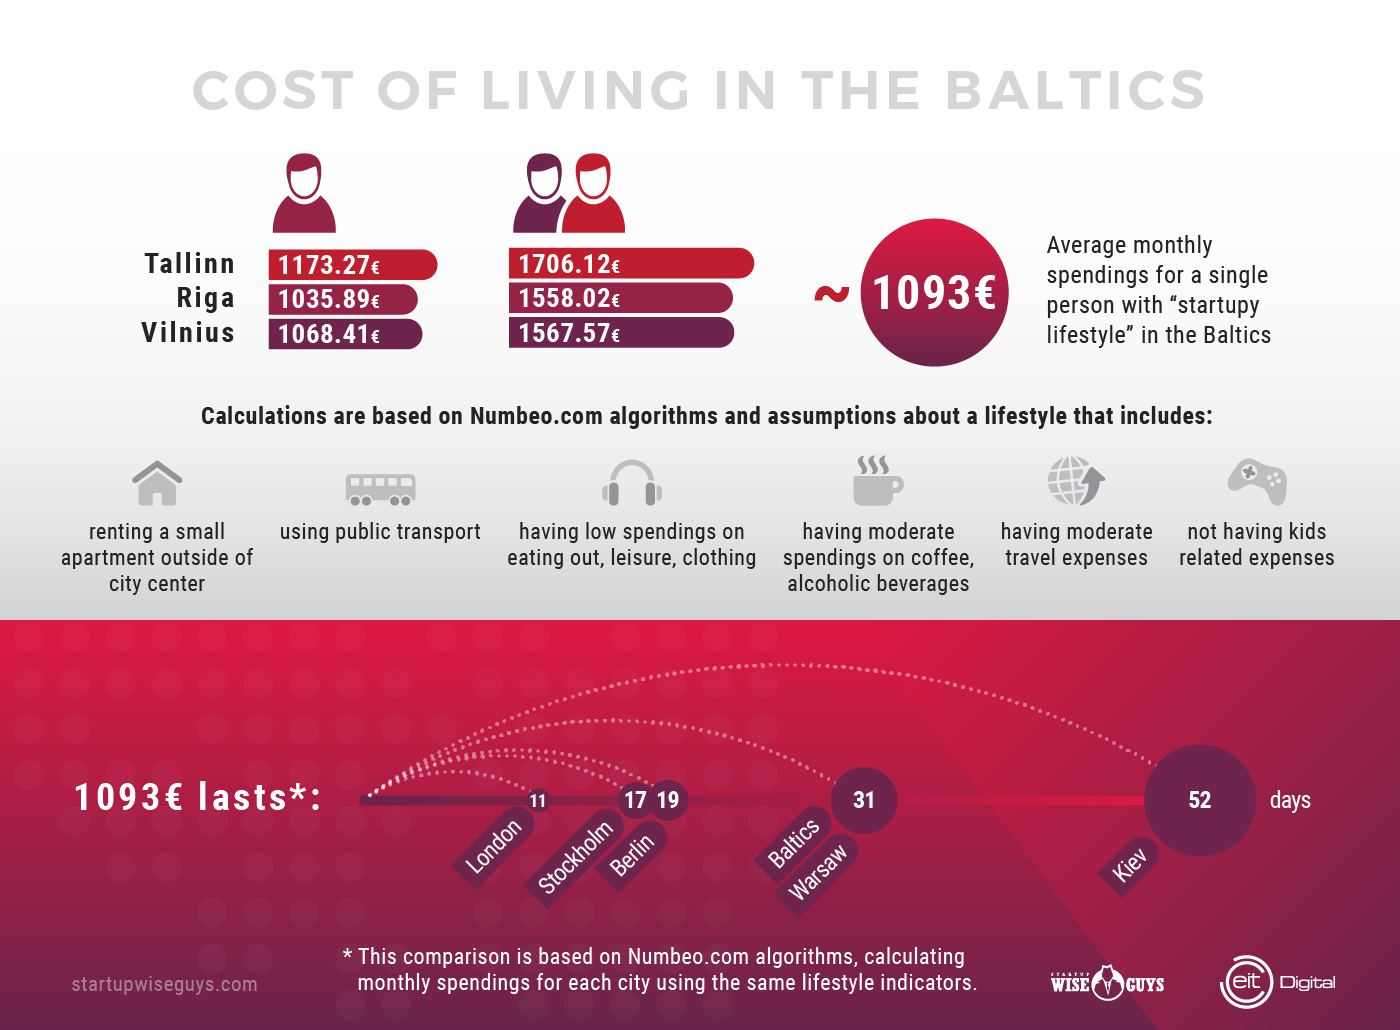 Cost of living in the Baltics.